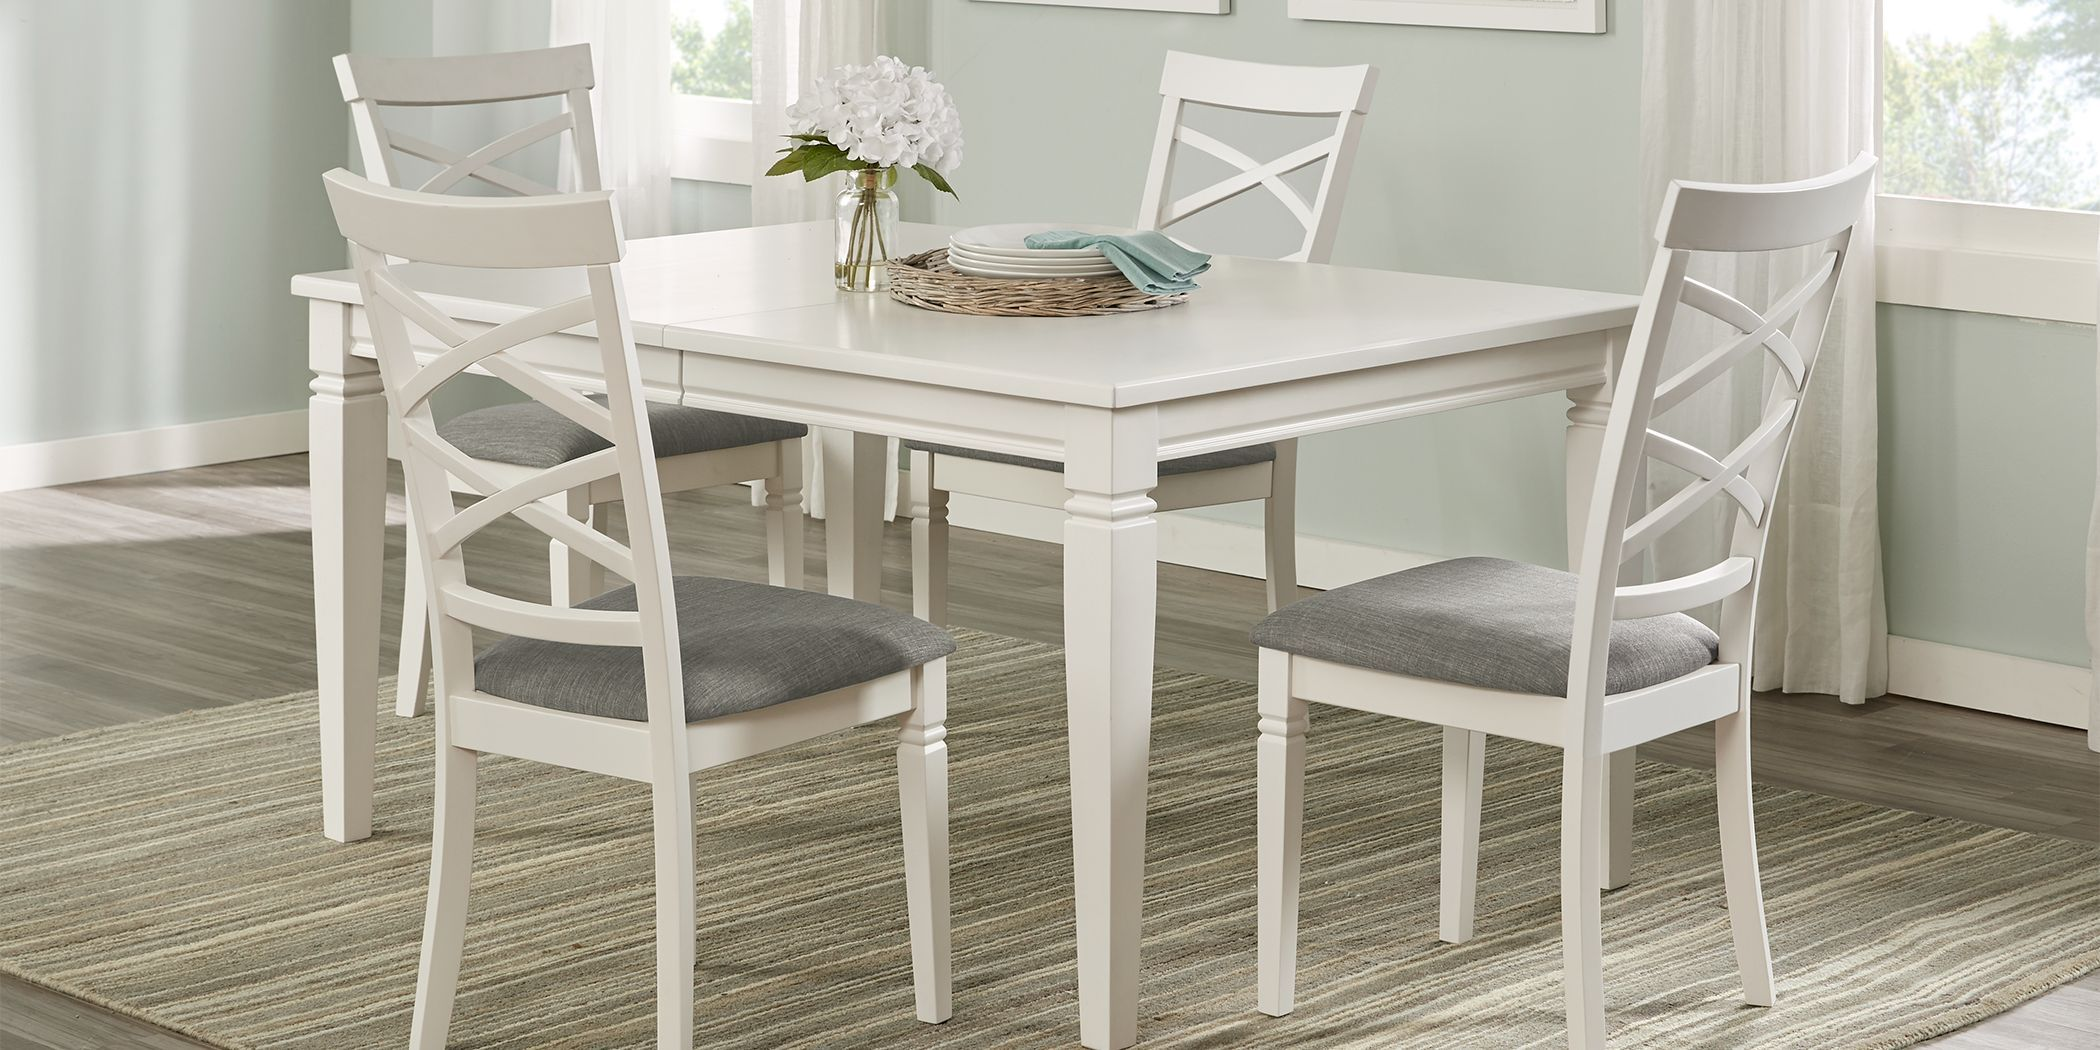 Riverdale White 5 Pc Rectangle Dining Room With X Back Chairs